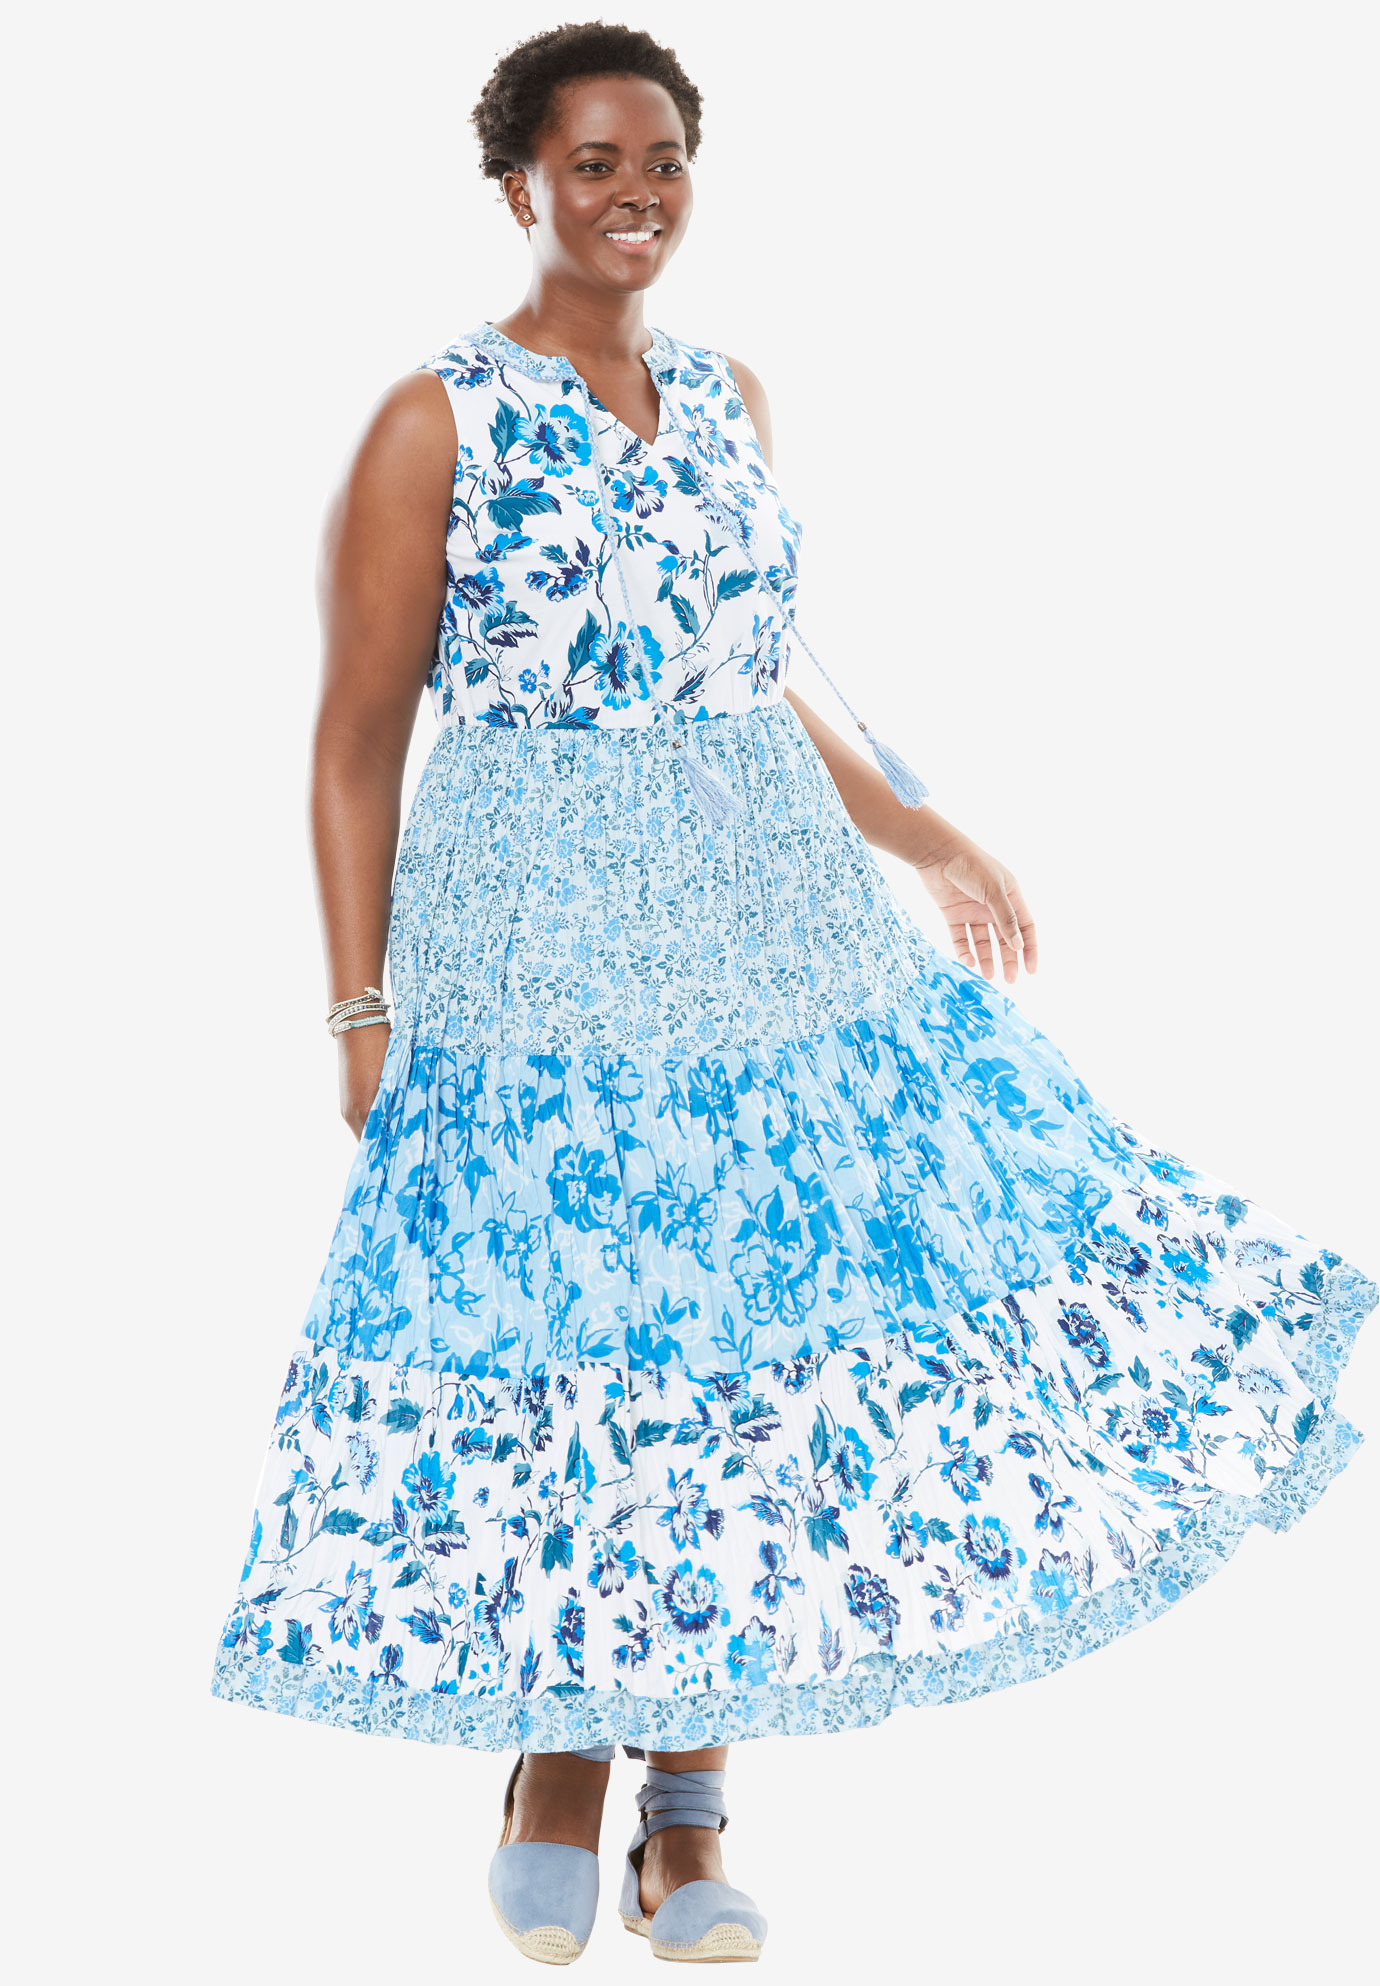 Plus Size Dresses Woman Within – DACC